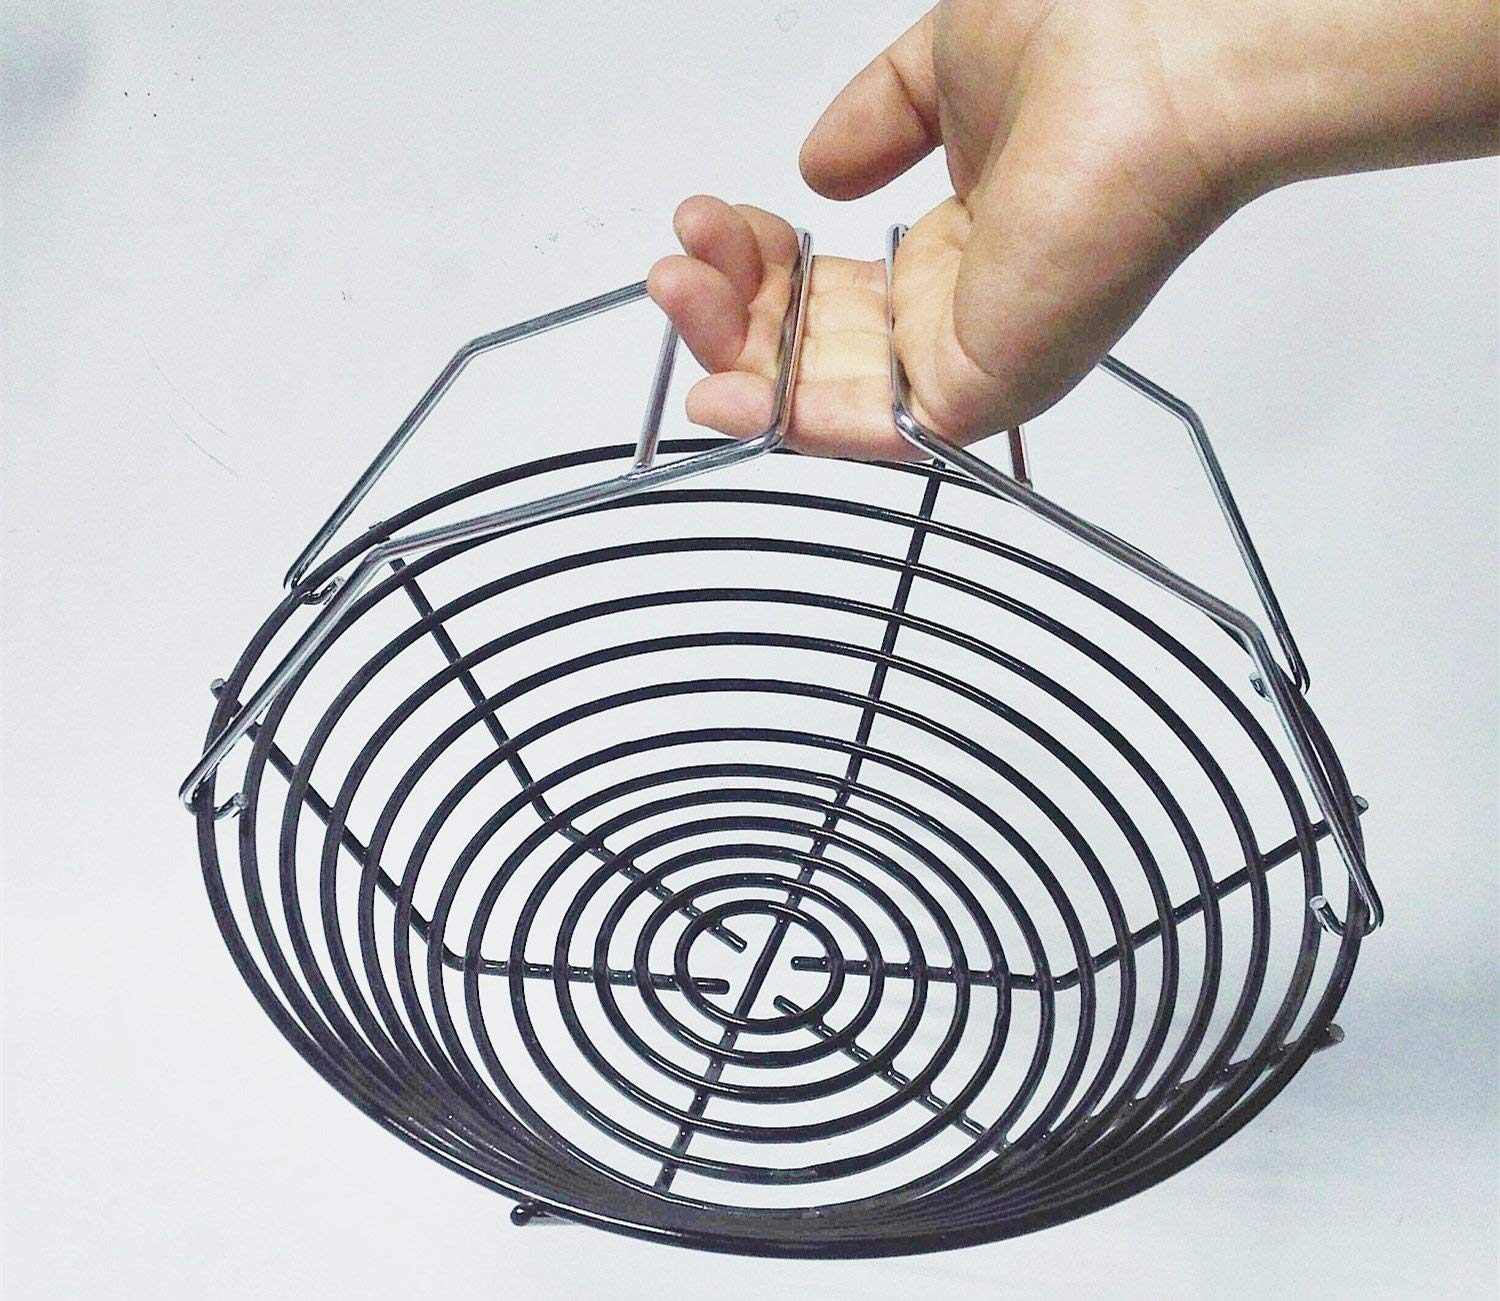 e582293003ad8 Get Quotations · Broilmann Porcelain Steel Charcoal Ash Basket with Two  Removable handles, Fits for Large Big Green